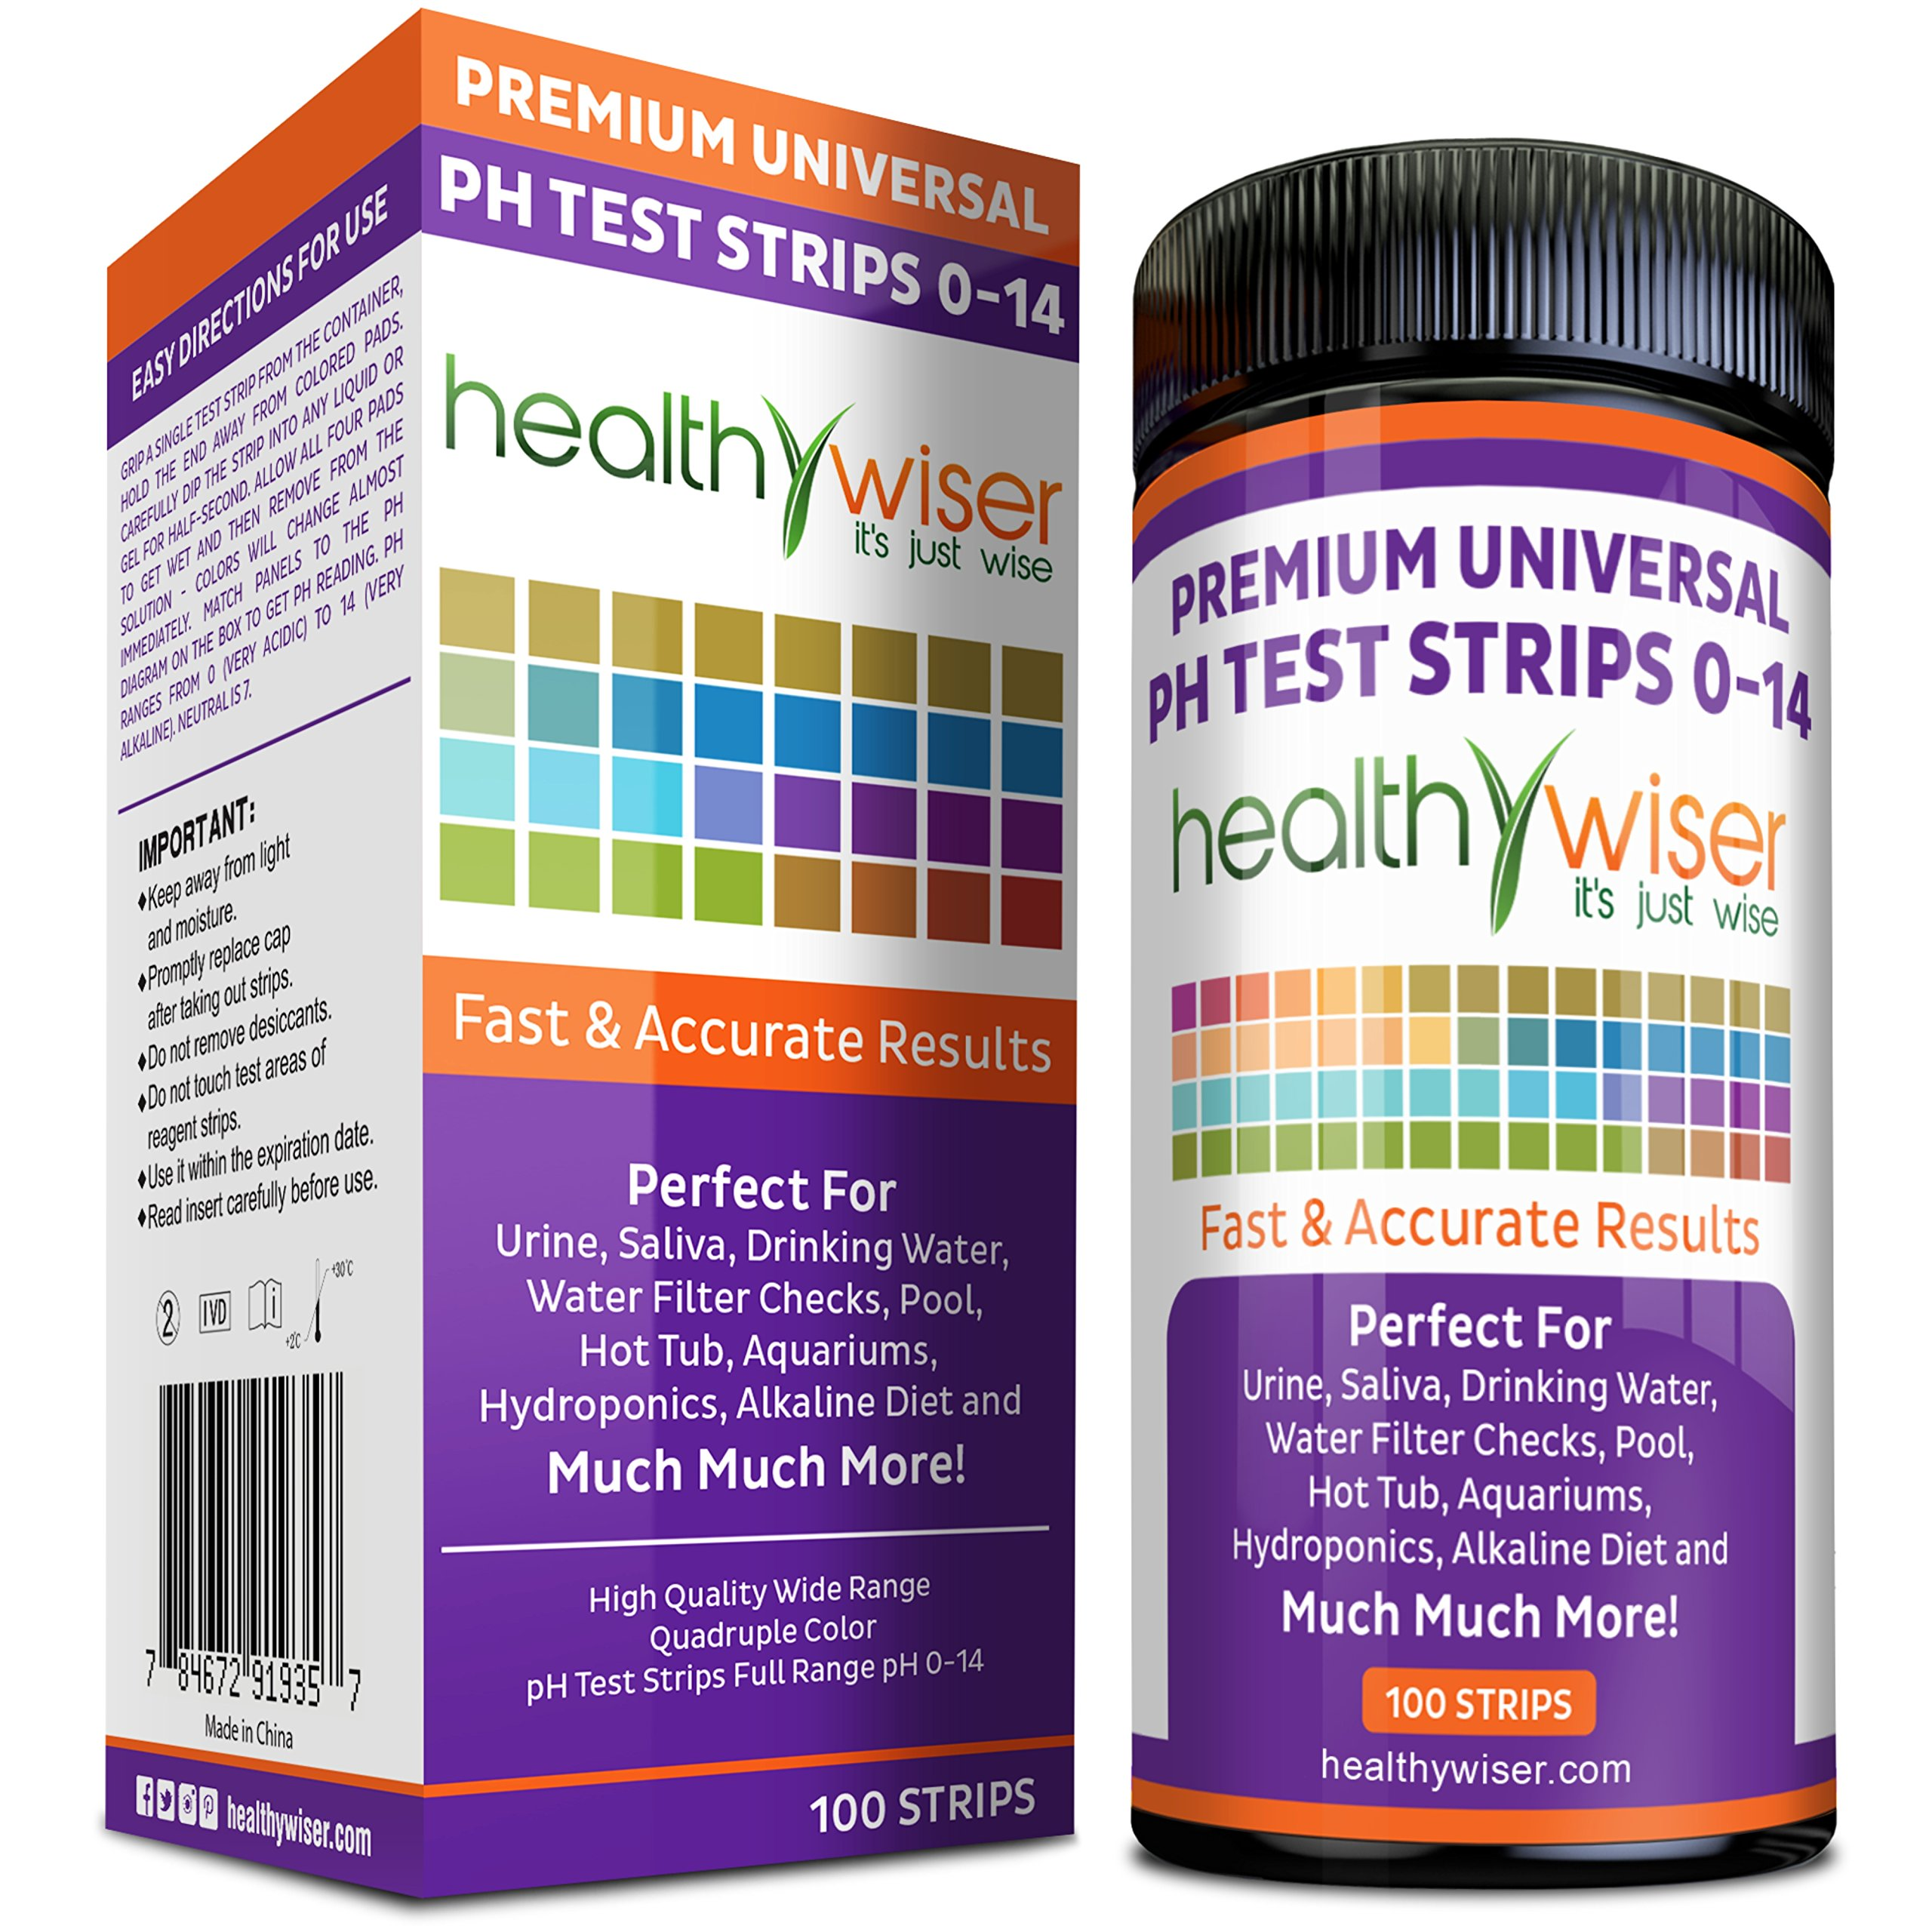 pH Test Strips 0-14, Universal Strips To Test Water Quality For Swimming Pools, Hot Tub, Hydroponics, Aquarium, Kombucha, Household Drinking Water, Soil, Urine & Saliva, Alkaline & Diabetic Diet 100ct by HealthyWiser (Image #1)